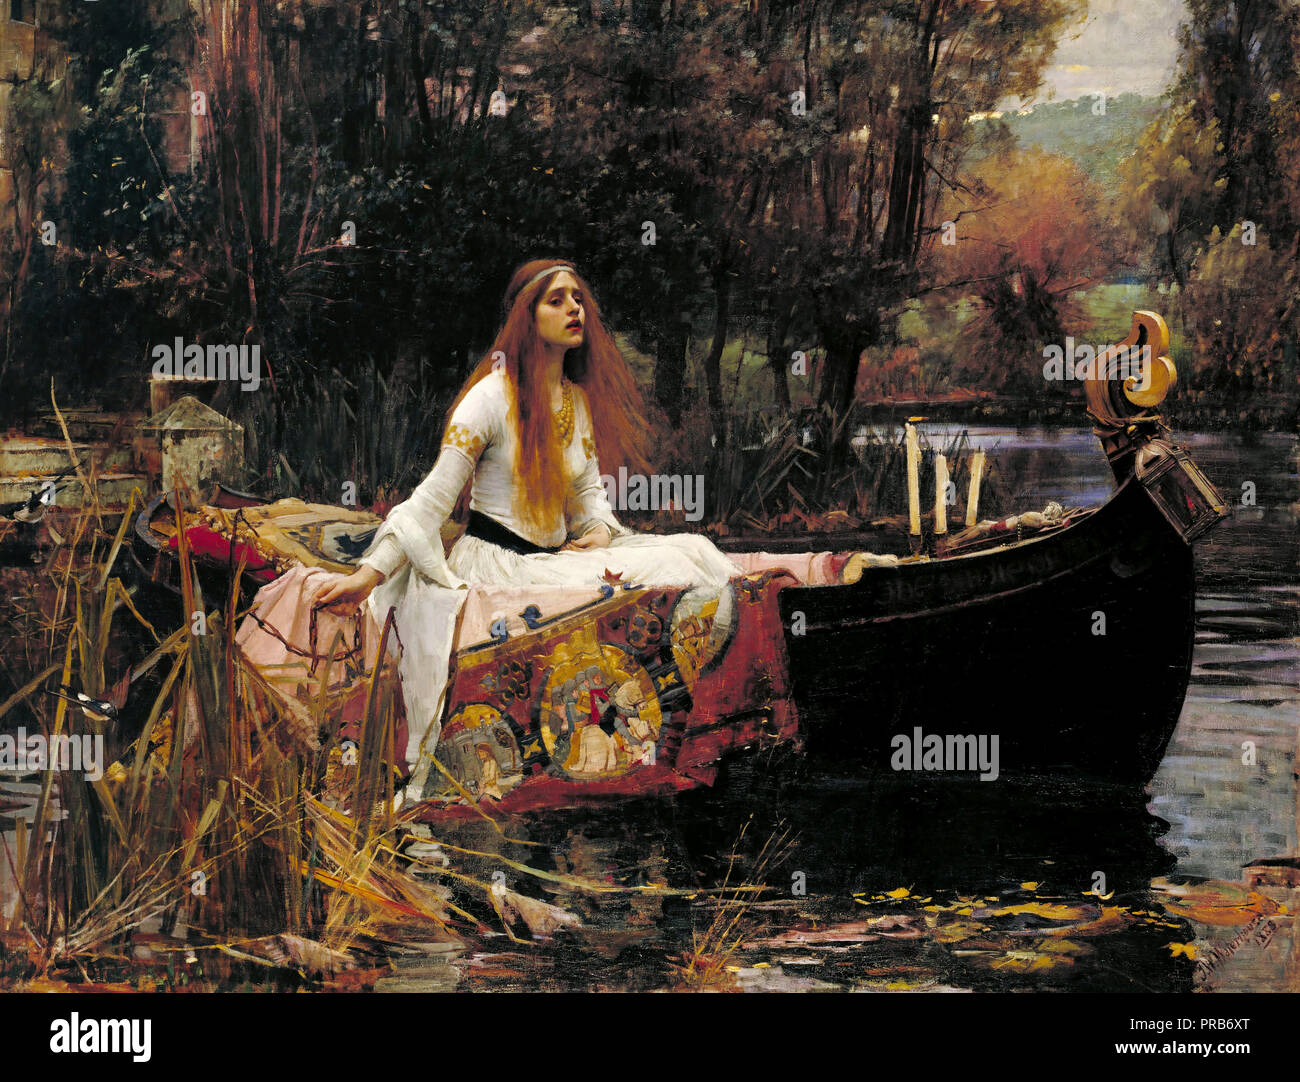 John William Waterhouse, The Lady of Shalott 1888 Oil on canvas, Tate Britain, London, England. - Stock Image